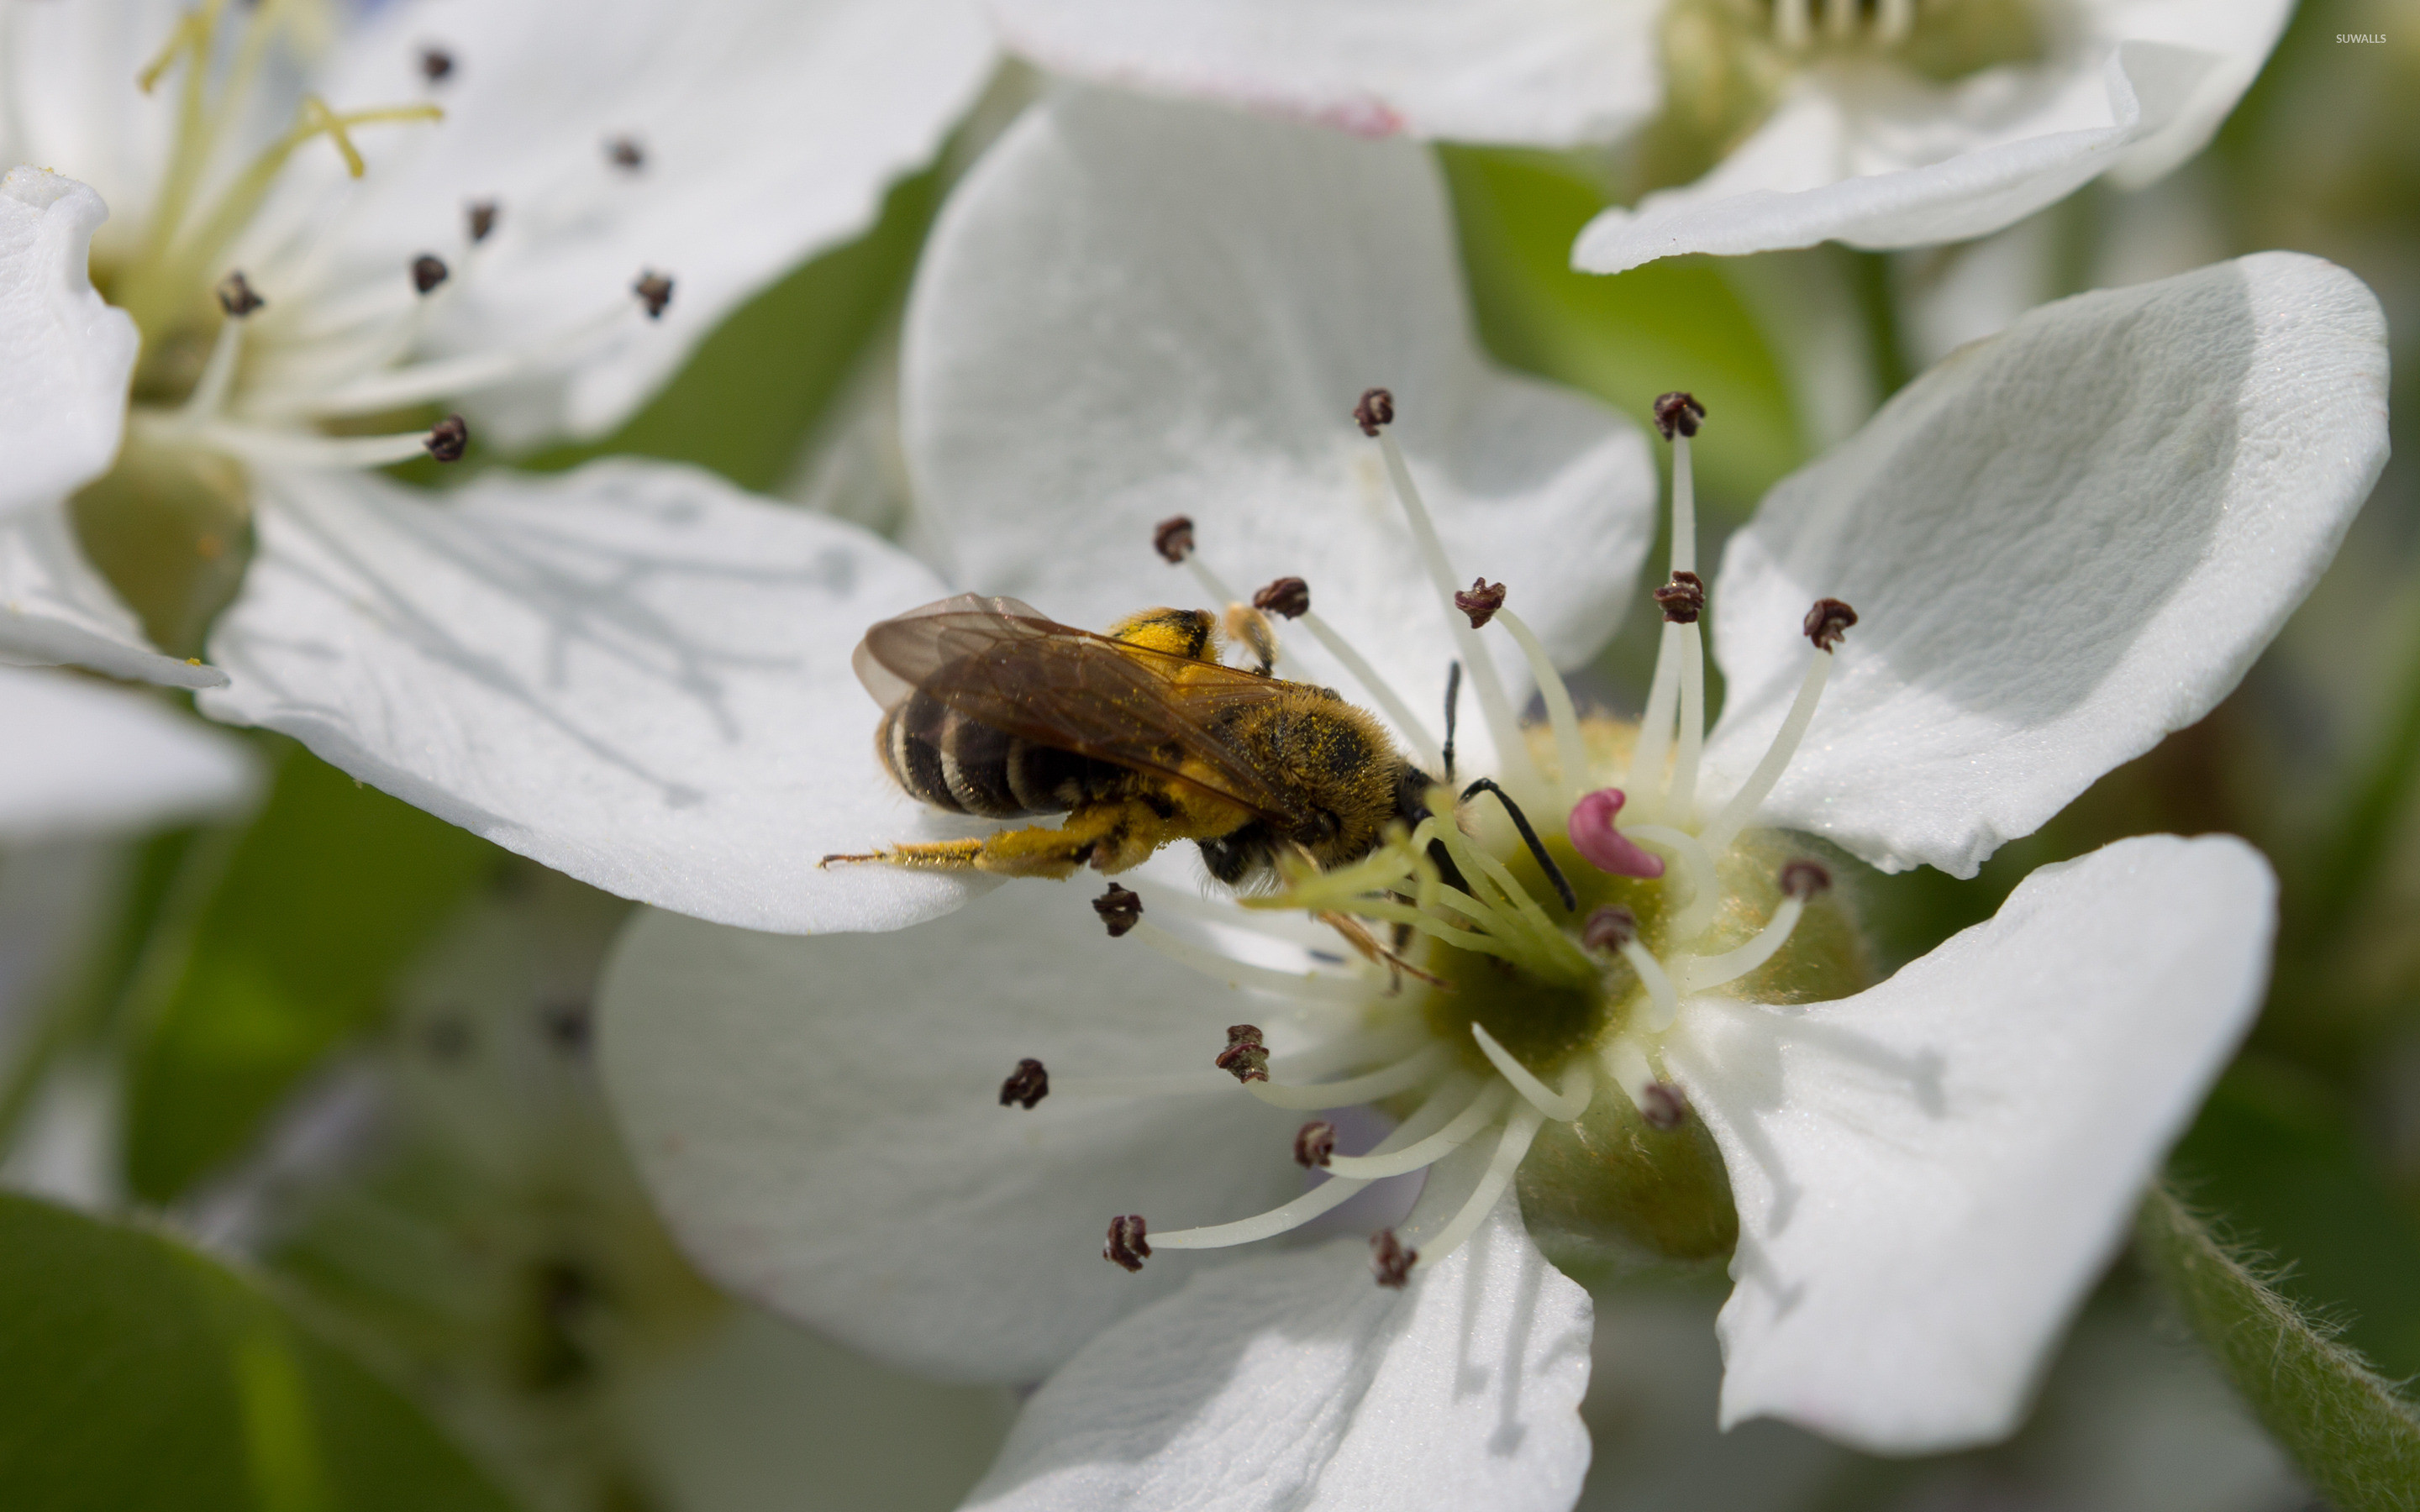 2880x1800 Bee on a pear blossom wallpaper